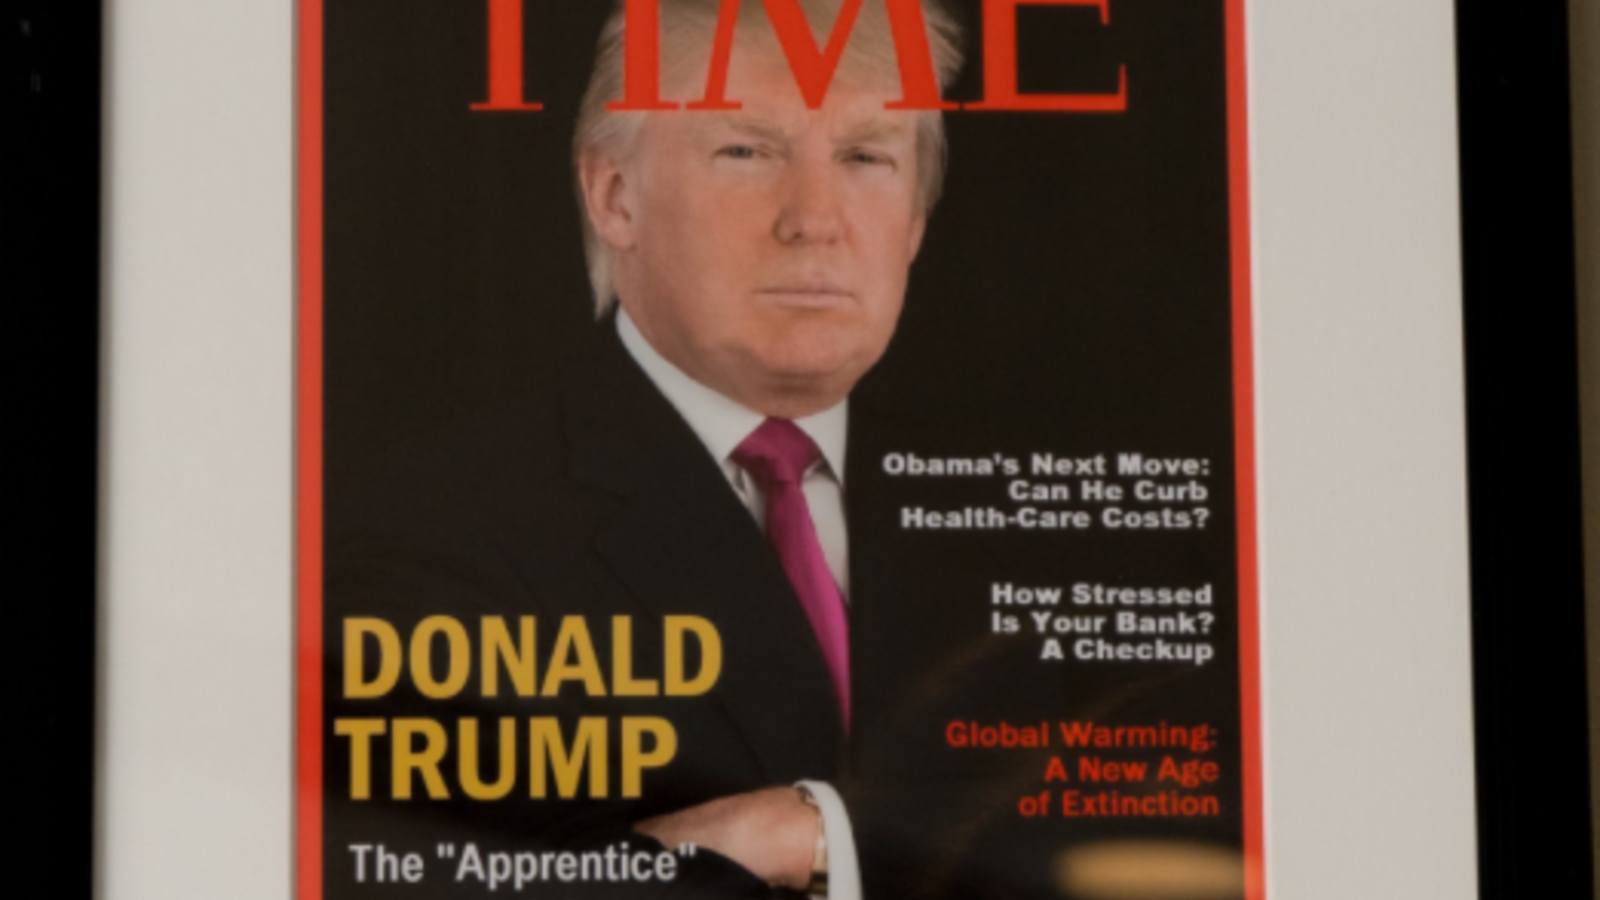 There was no March 1, 2009, issue of the Time magazine and, in fact, there was no issue at all in 2009 with Trump on the cover. (twitter)